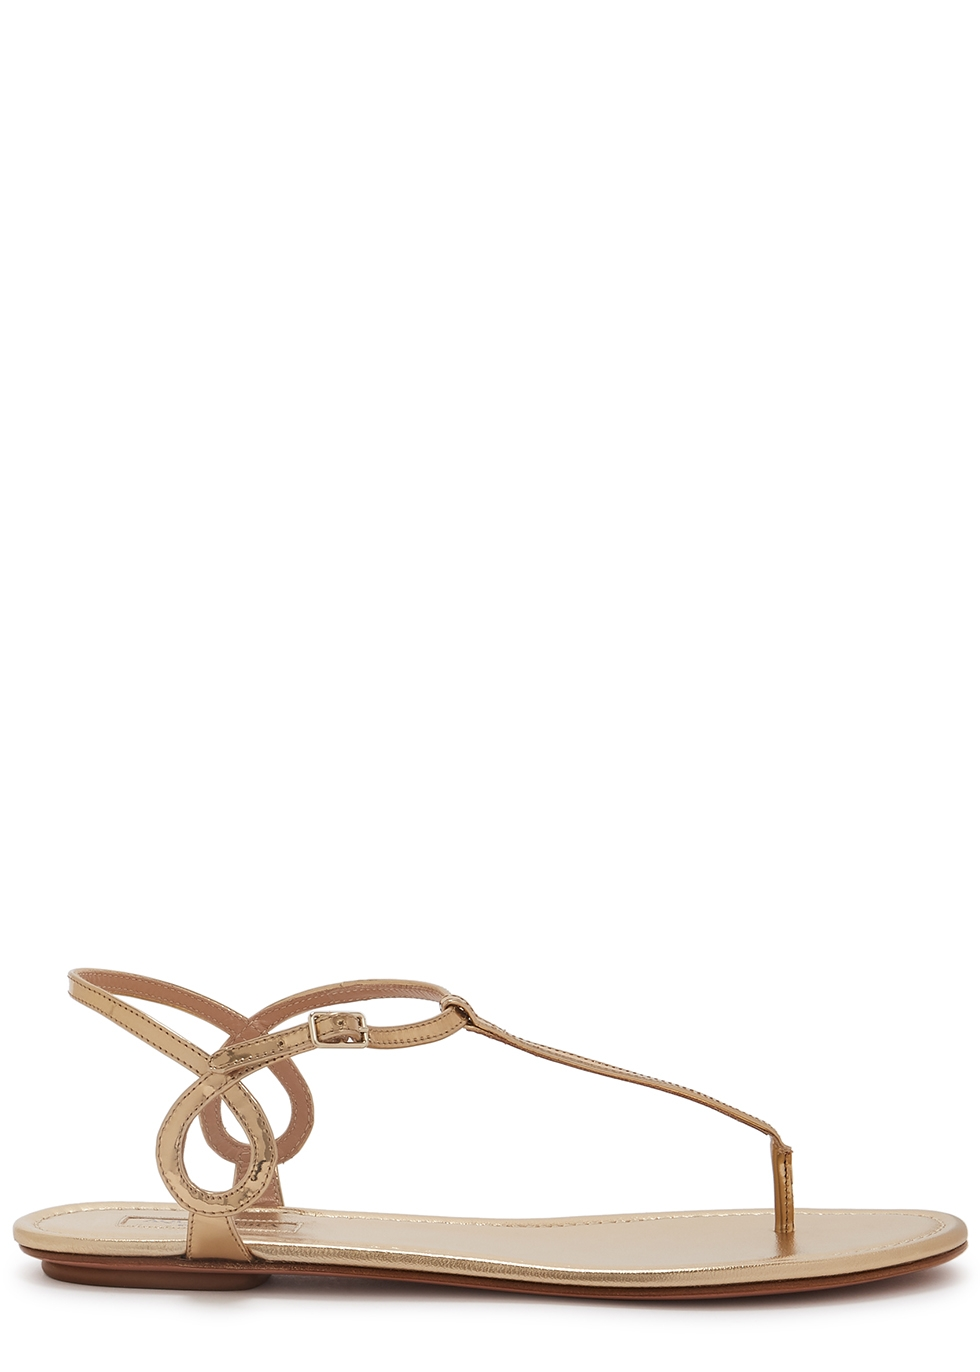 Almost Bare gold leather sandals